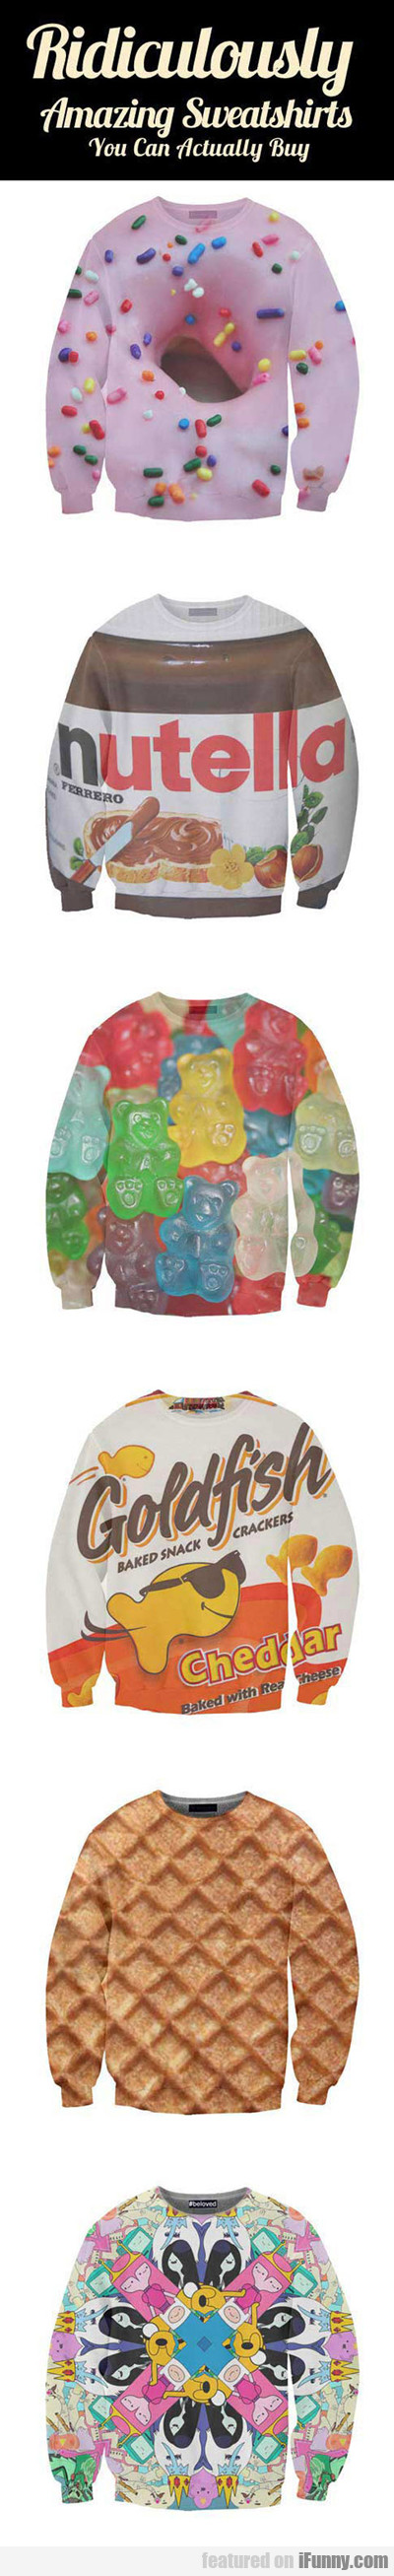 Ridiculously Amazing Sweatshirts...